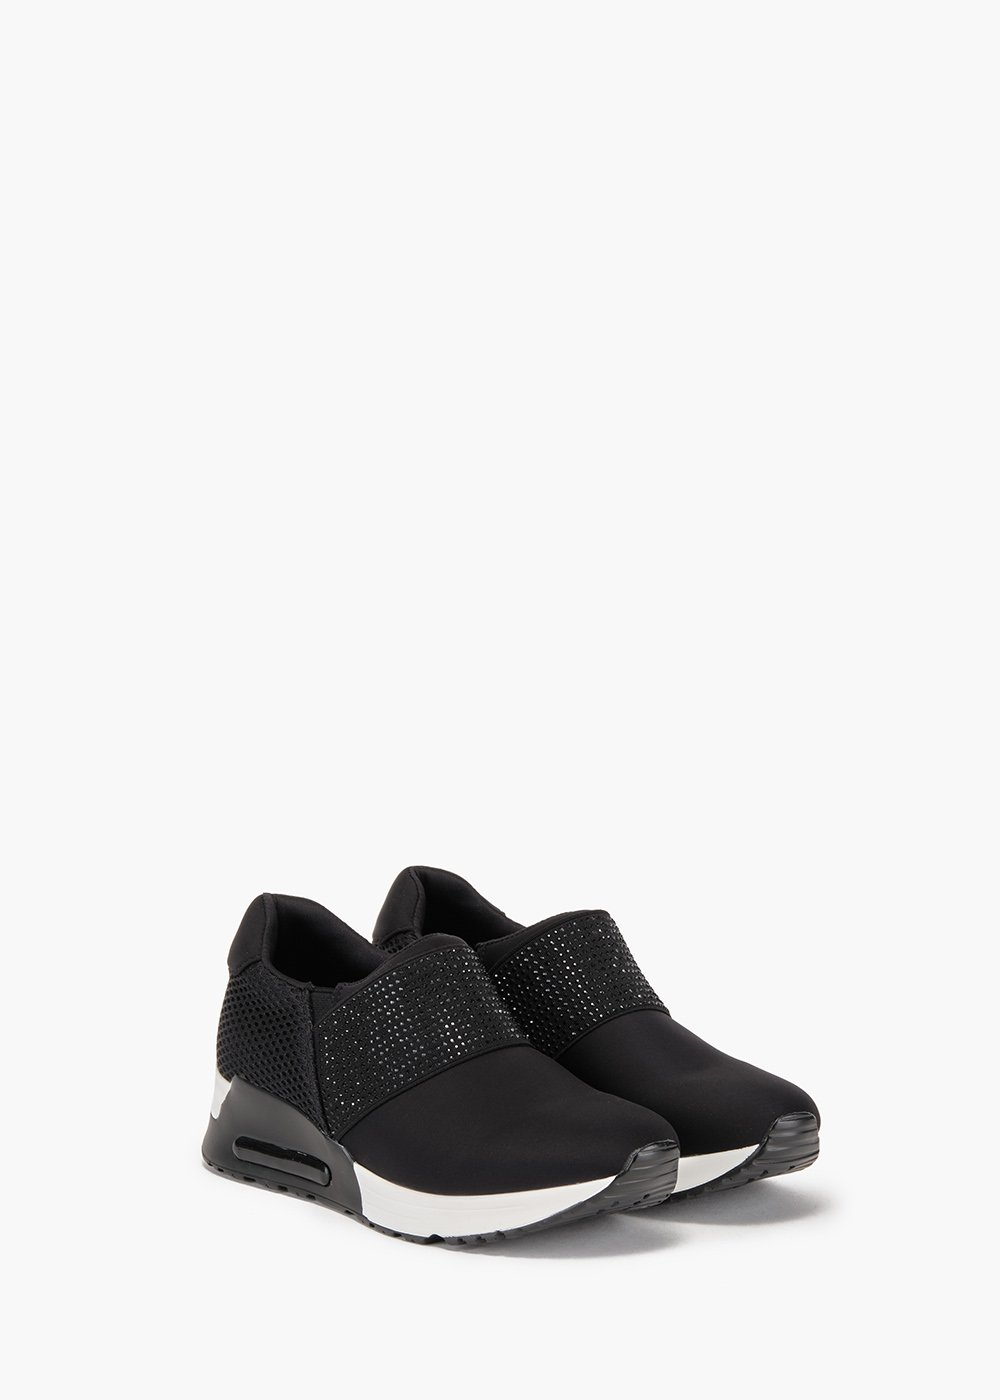 Sakira gym shoes in technical fabric and eco leather - Black - Woman